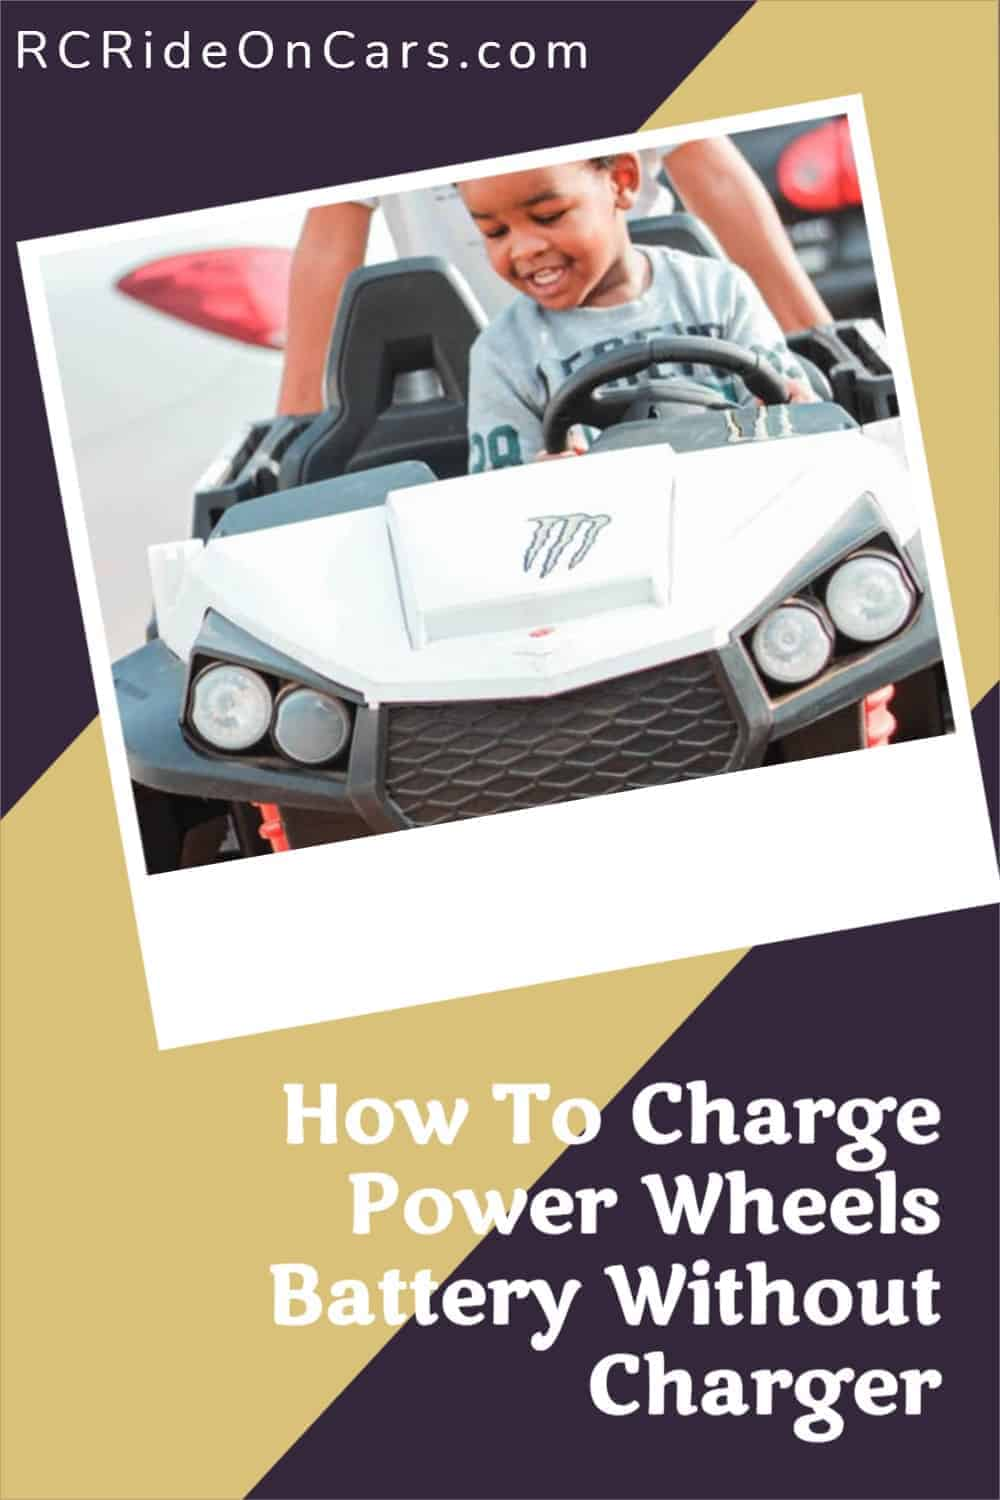 How To Charge Power Wheels Without A Charger